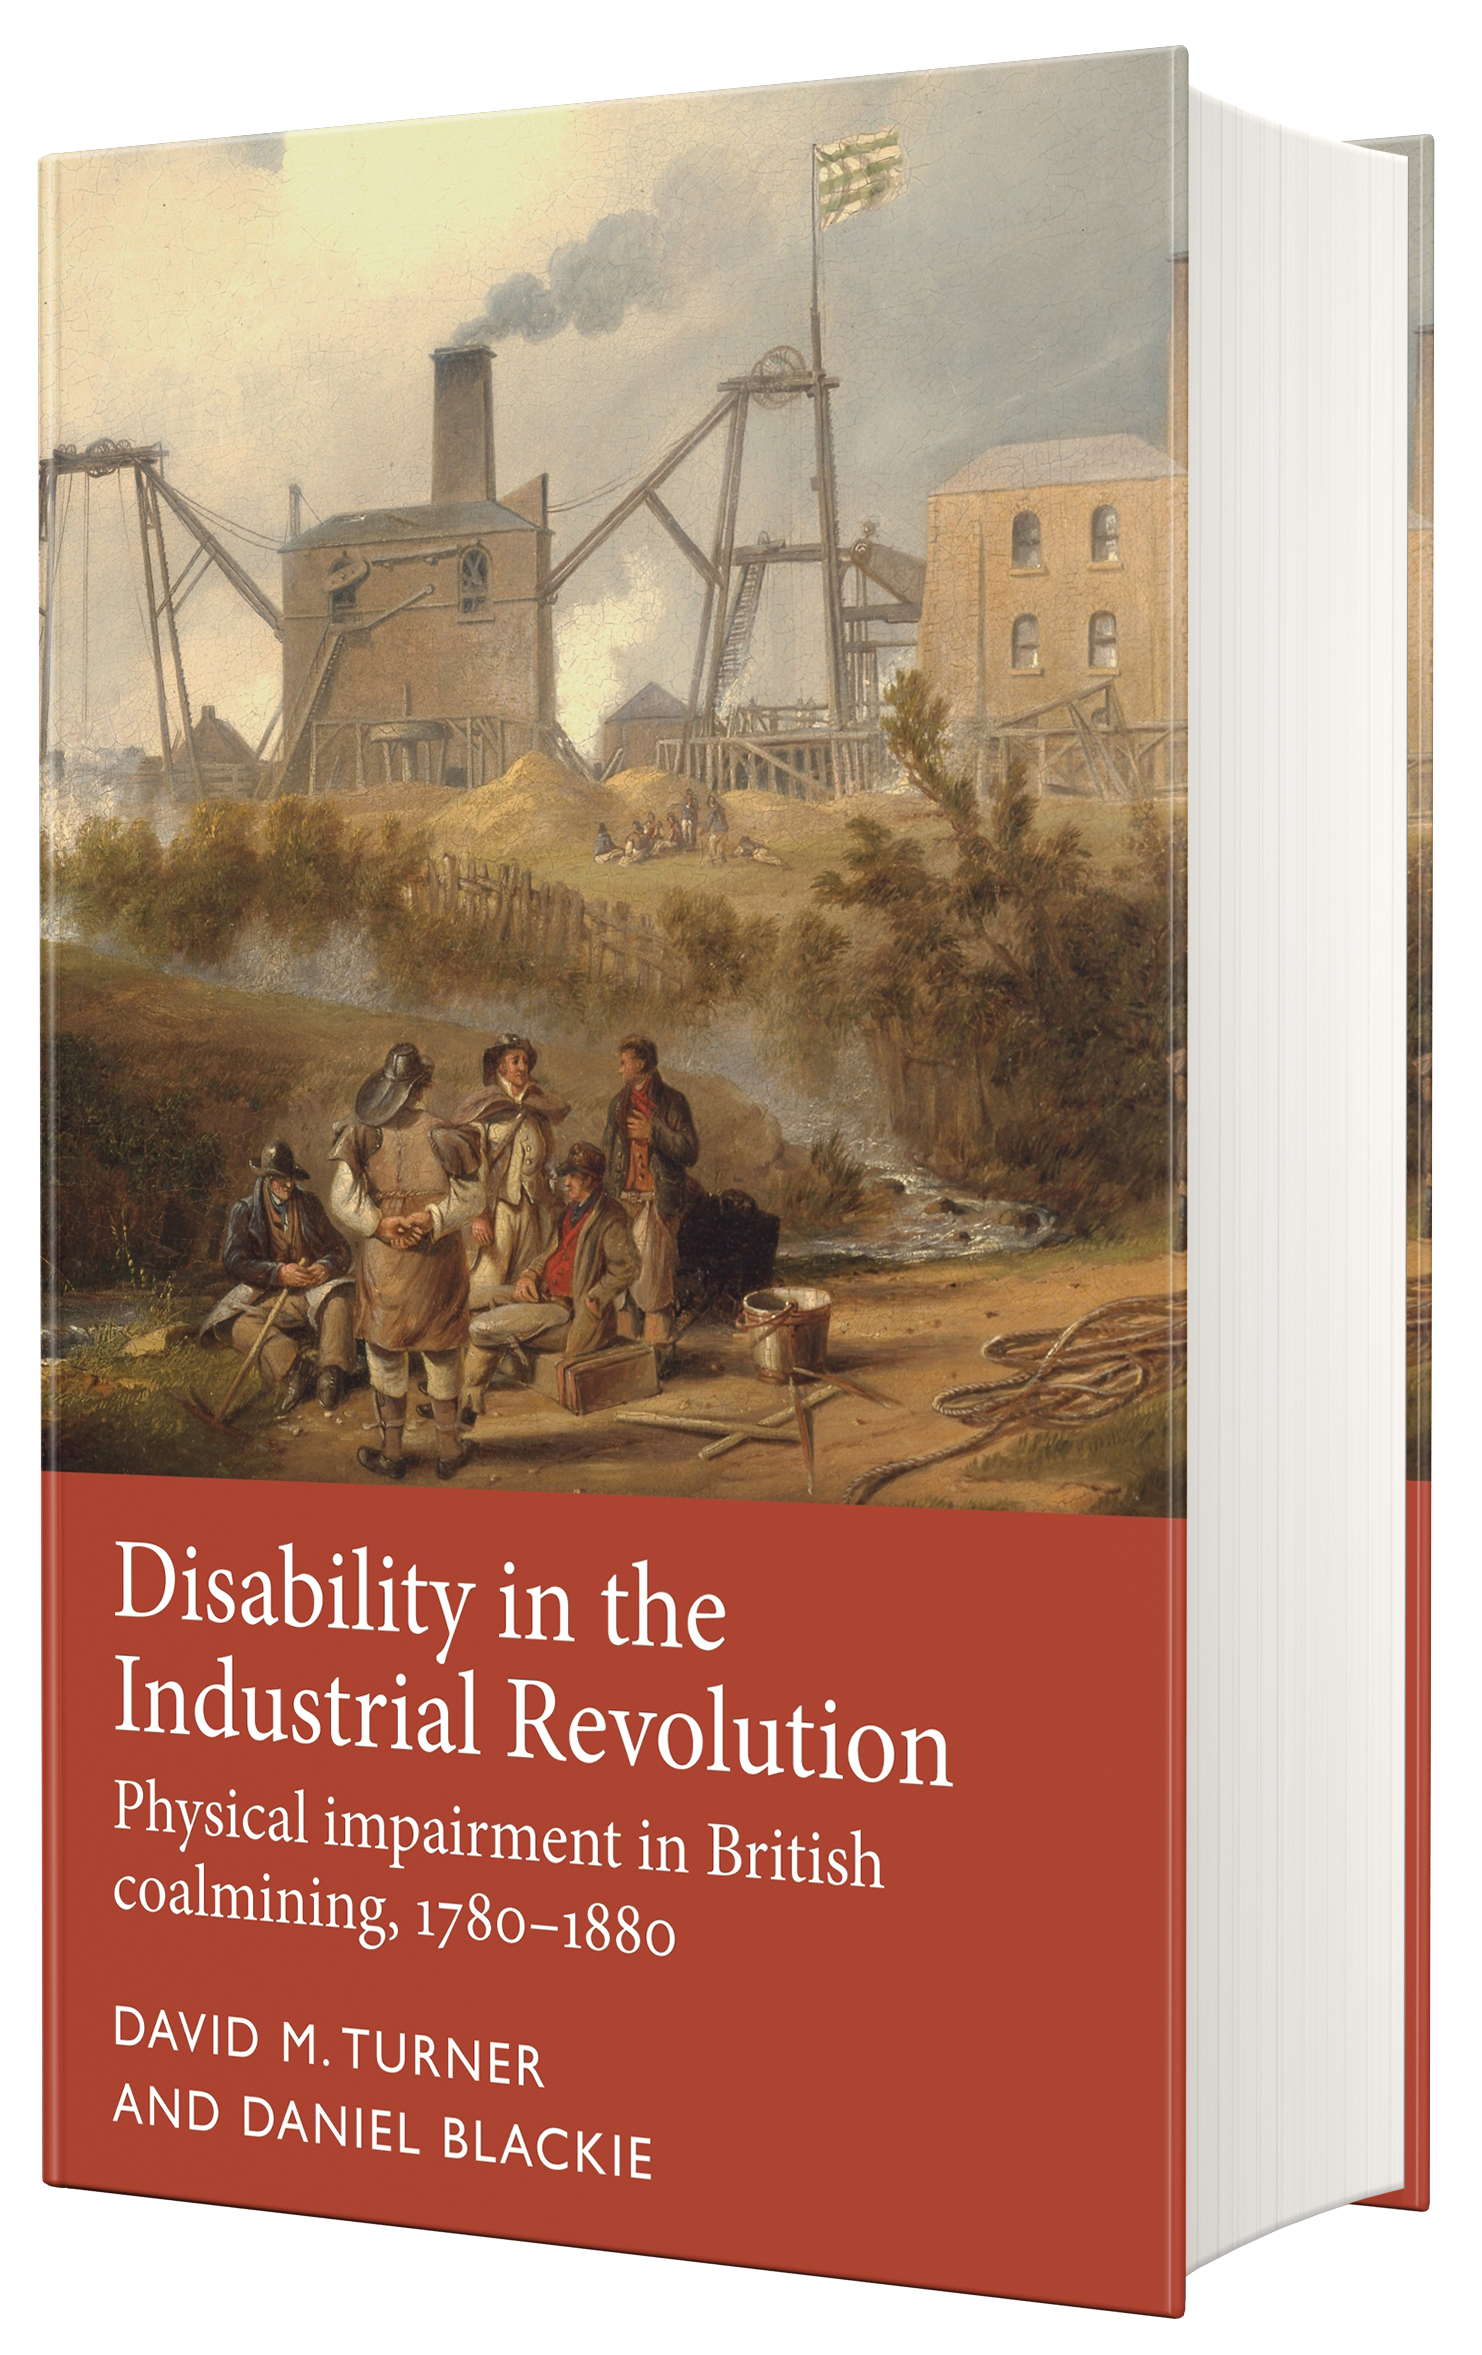 Disability in the Industrial Revolution – Q&A with David M. Turner and Daniel Blackie